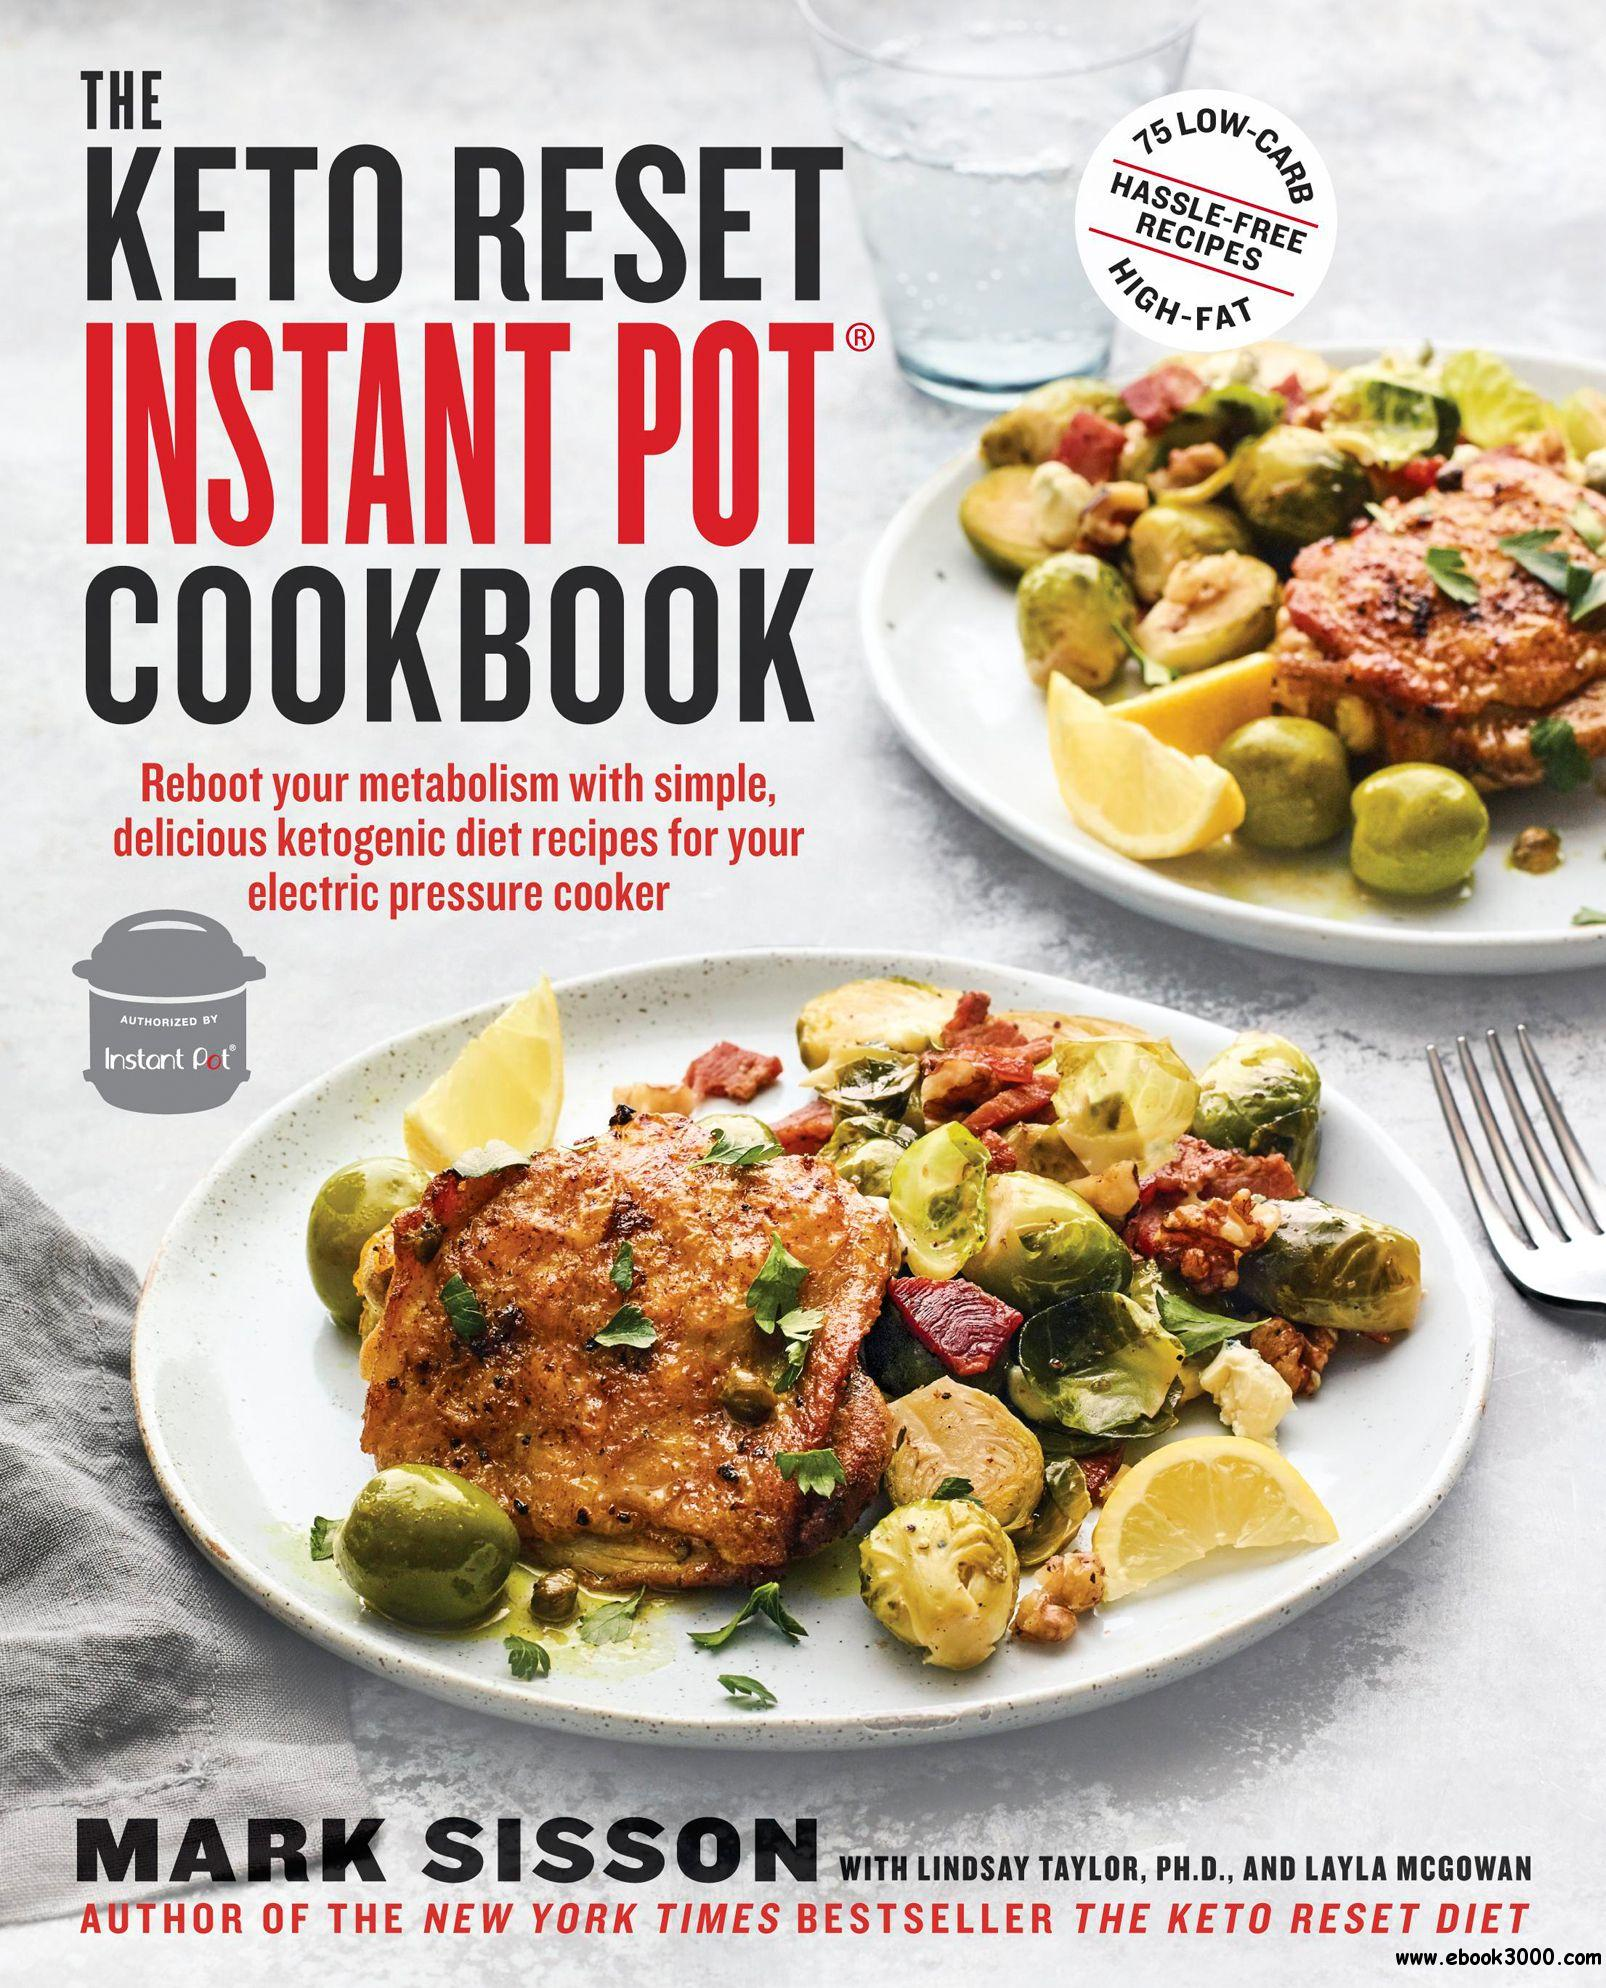 The Keto Reset Instant Pot Cookbook: Reboot Your Metabolism with Simple, Delicious Ketogenic Diet Recipes for Your Electric...